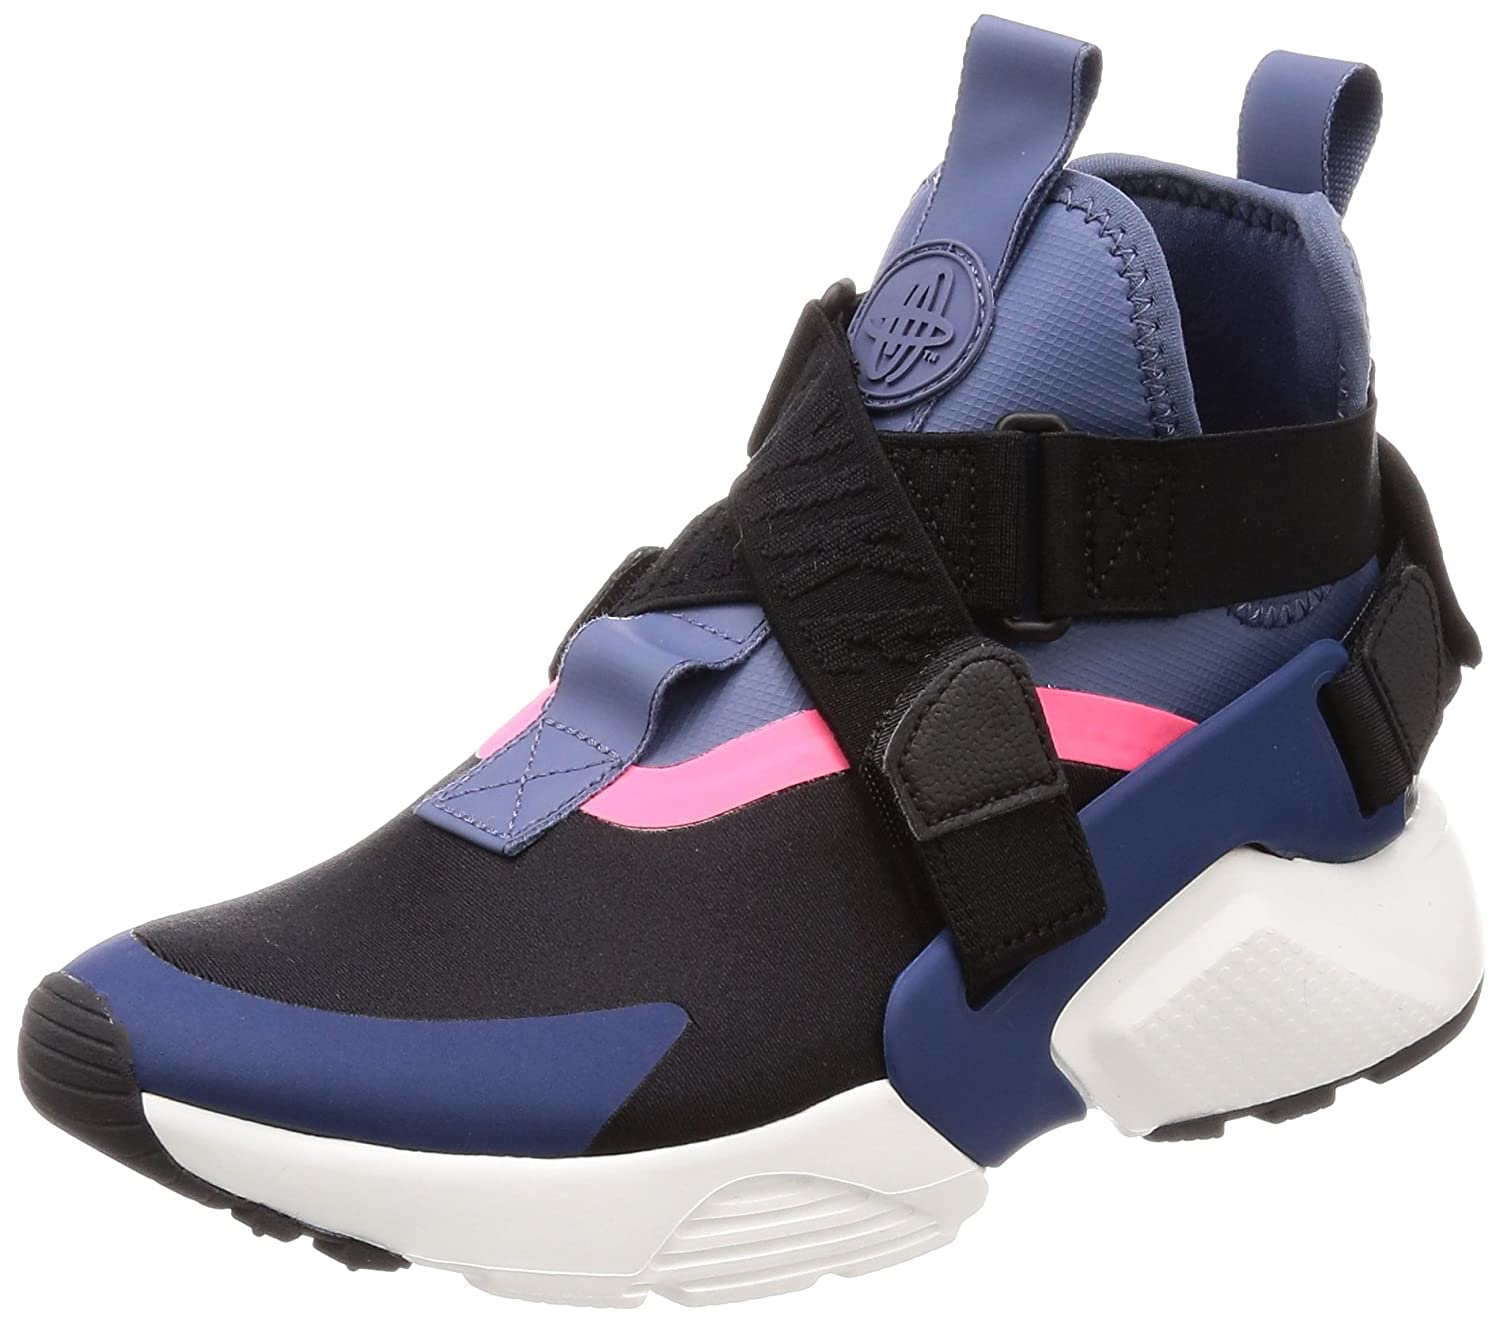 [ナイキ] スニーカー W Air Huarache City AH6787-002 B077SB82Z8 23.0 cm|BLACK/NAVY-DIFFUSED BLUE-RACER PINK BLACK/NAVY-DIFFUSED BLUE-RACER PINK 23.0 cm